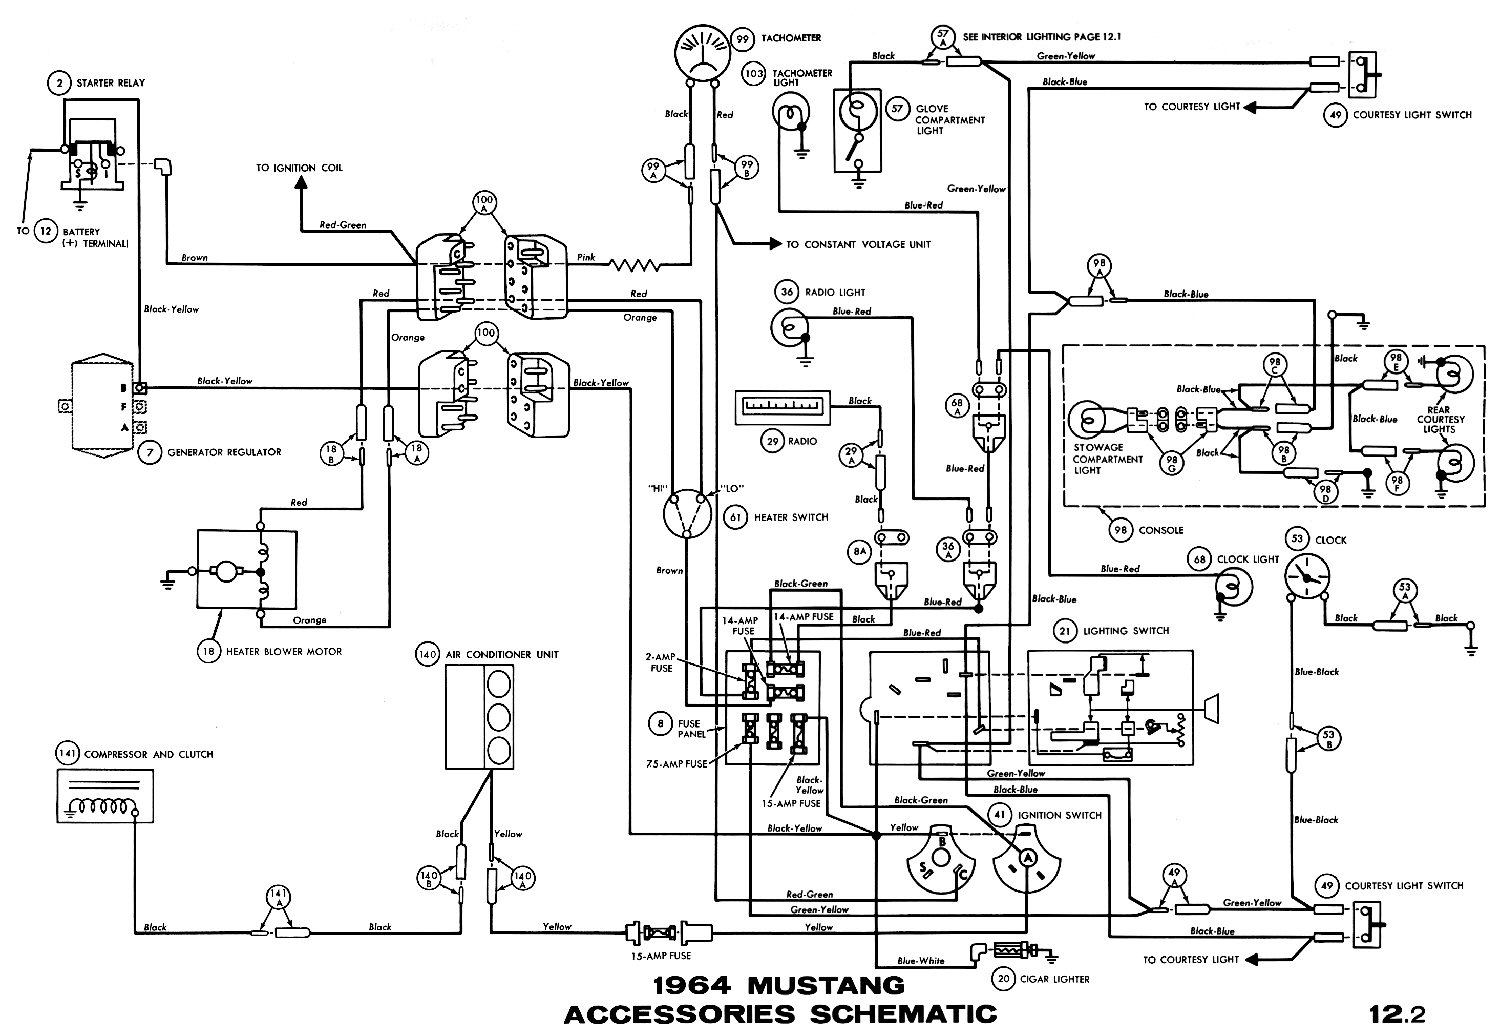 1964 Mustang Wiring Diagrams - Average Joe Restoration on